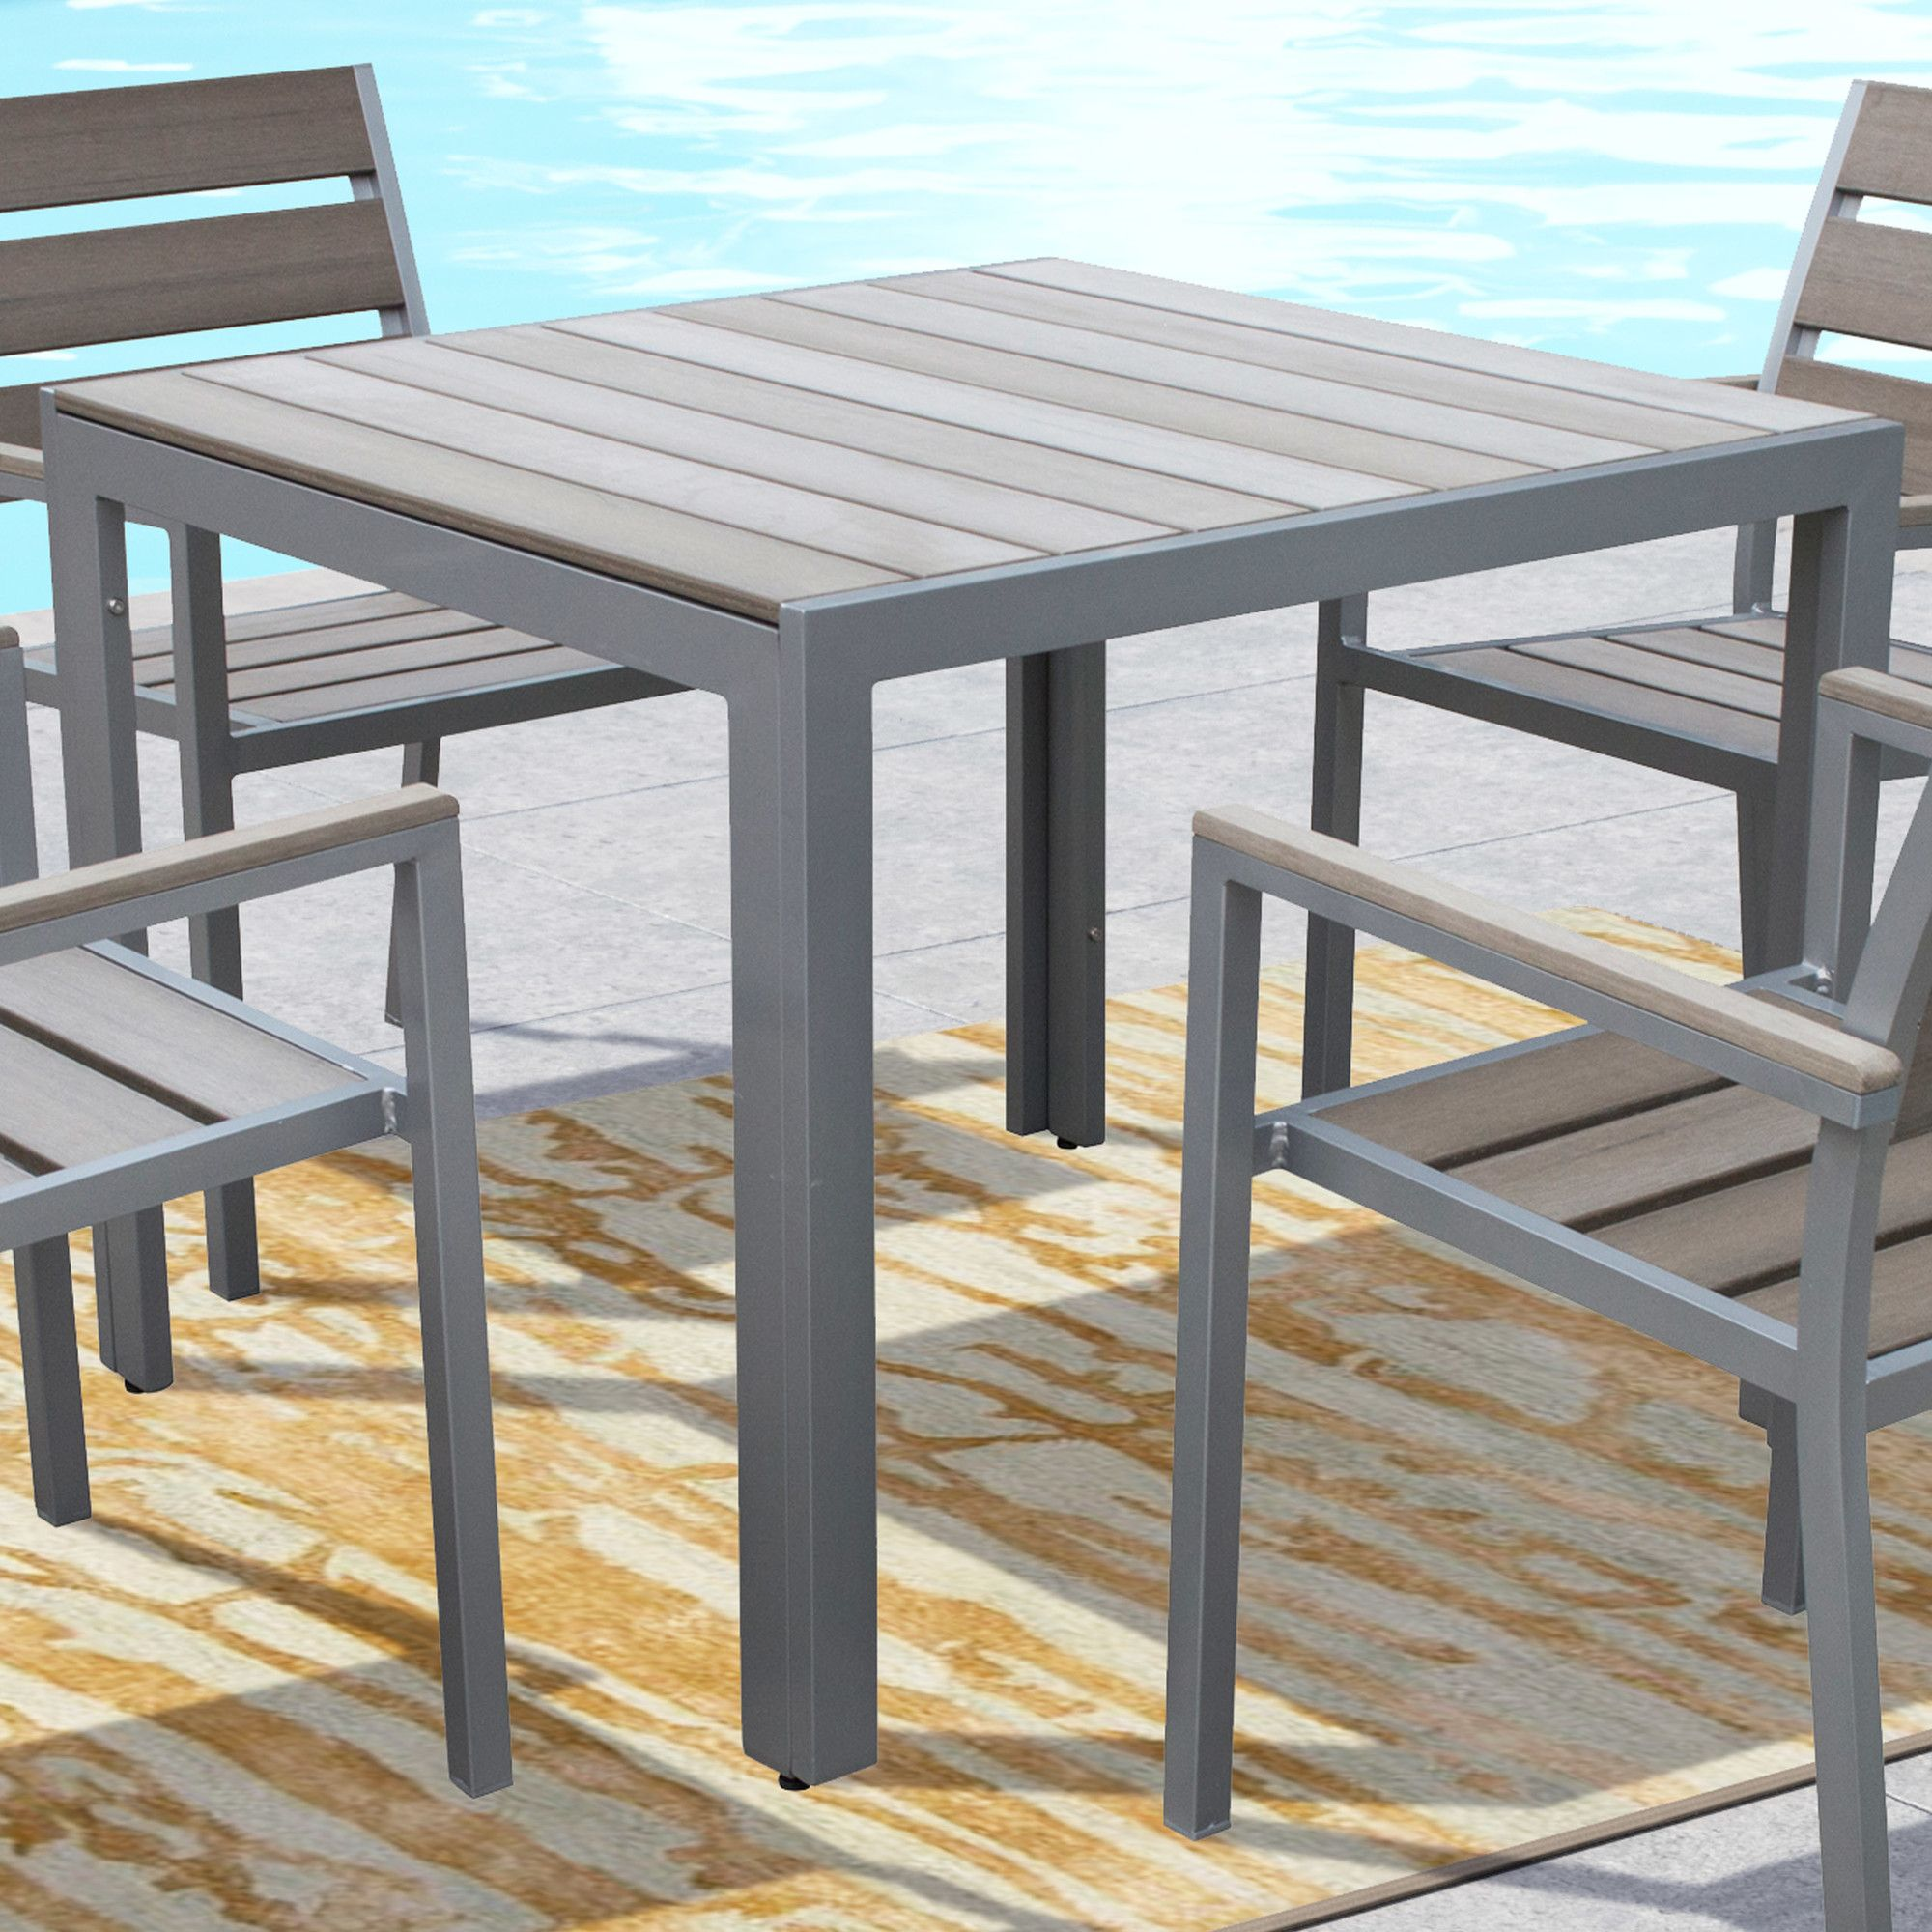 Kyree Dining Table | Outdoor dining chairs, Patio dining ... on Bade Outdoor Living id=81188